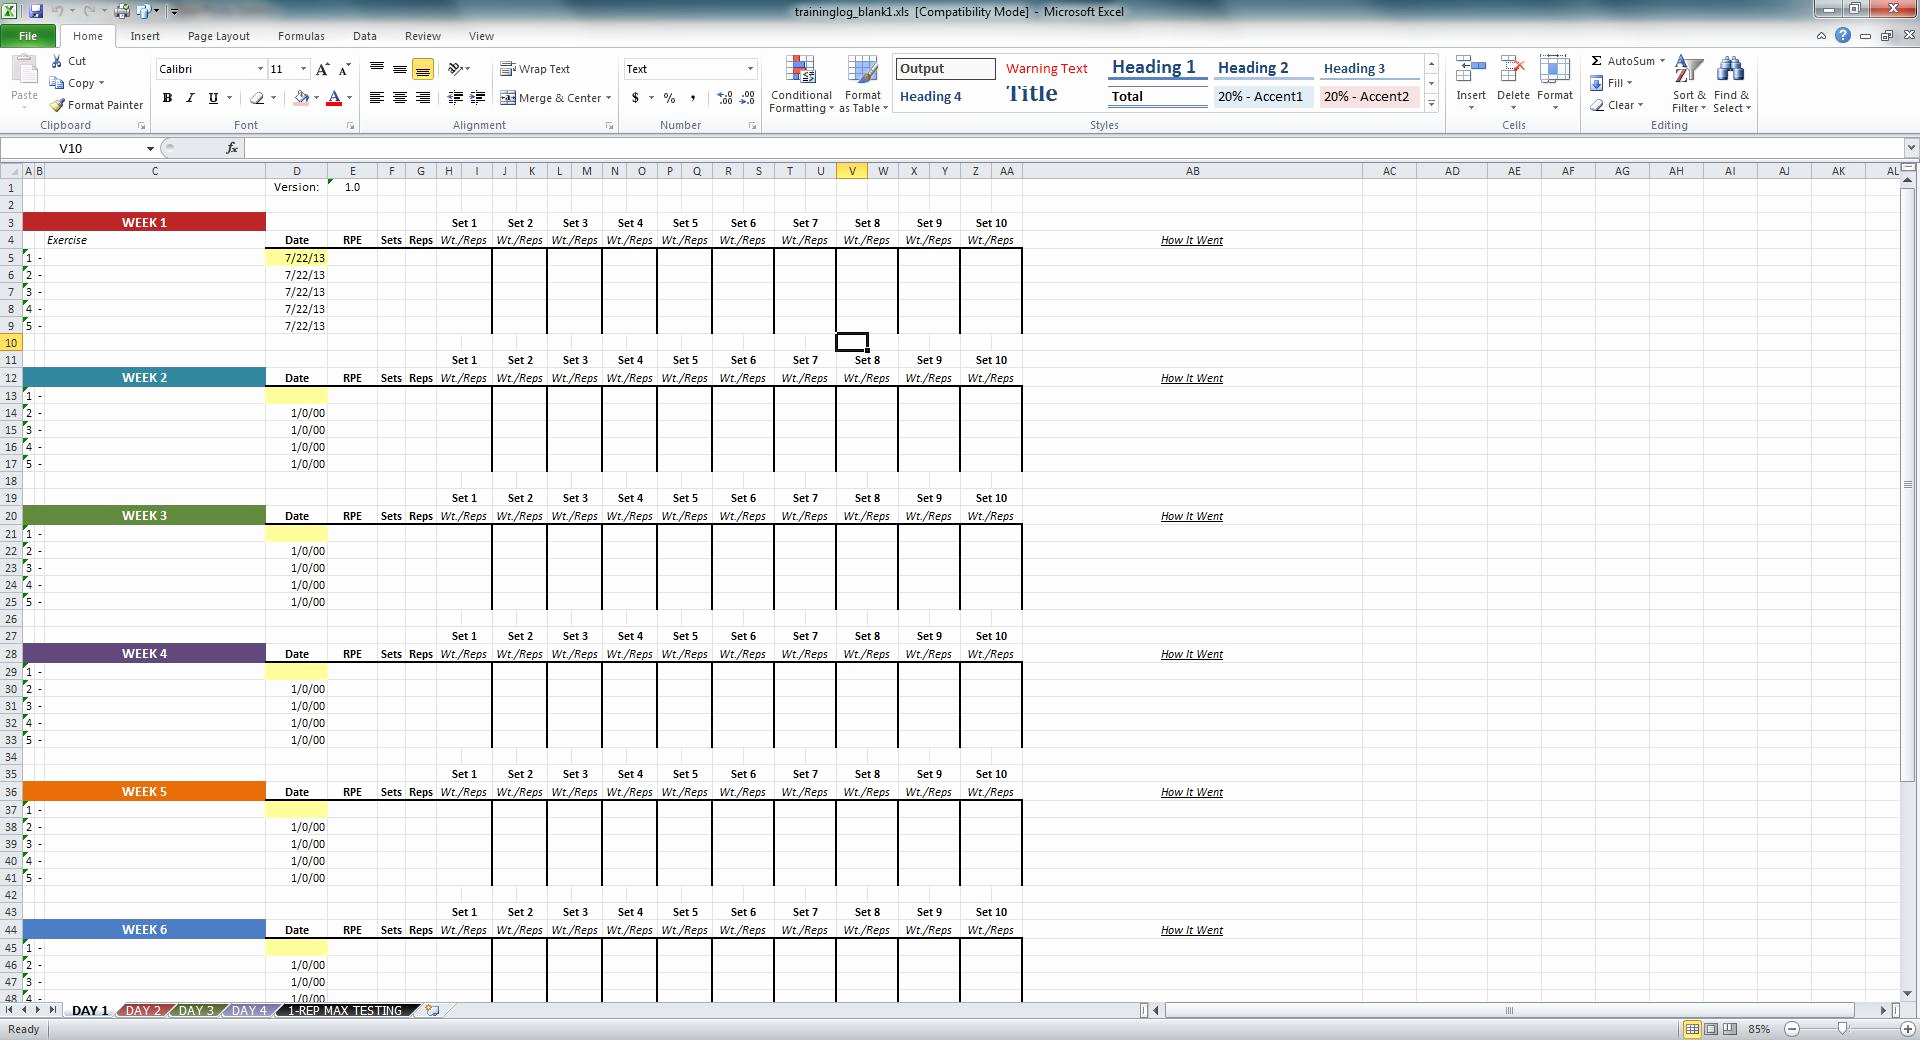 Letters Of Excel Spreadsheet Classes Inside Excel Spreadsheet Classes In Spreadsheet